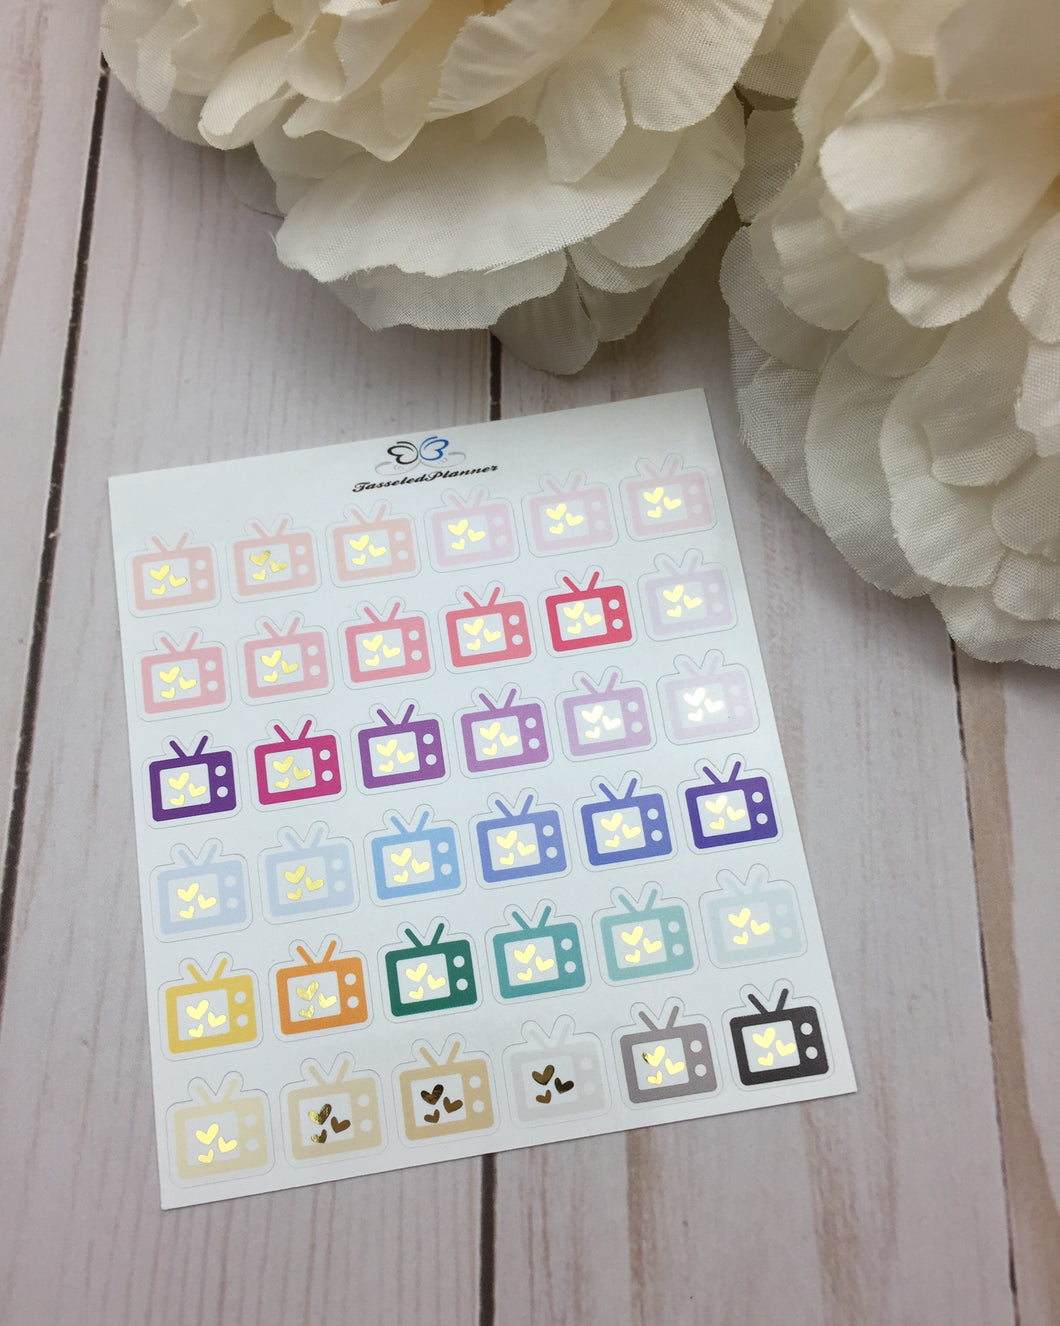 Foil TV Planner Stickers | Foiled Television Planner Stickers | Foil TV Binge Planner Stickers